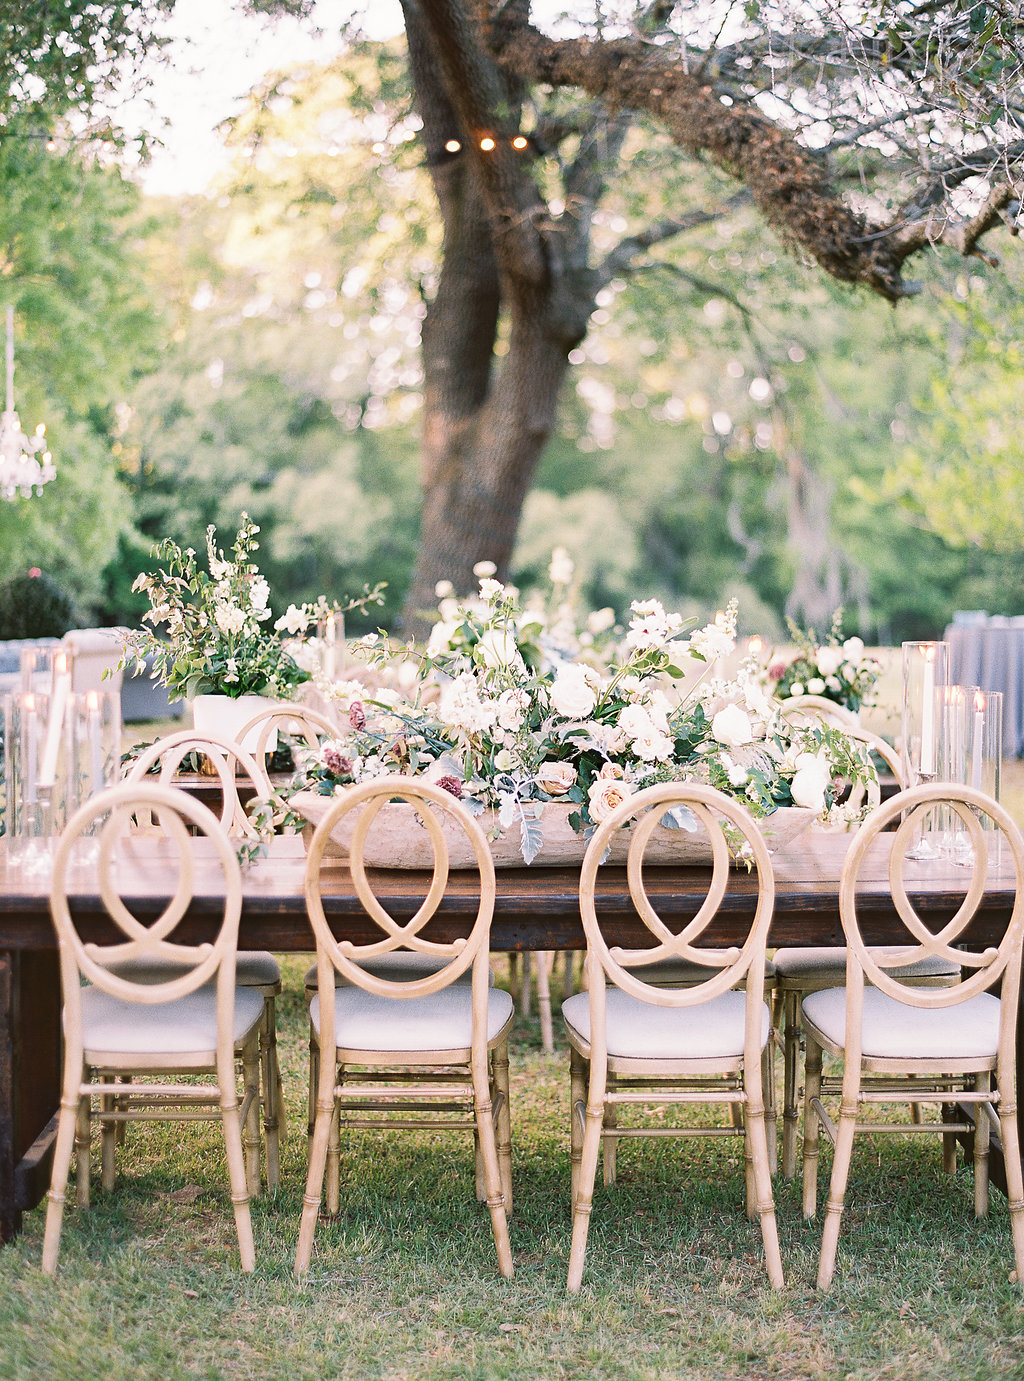 outdoor wedding reception table set up with neutral and green floral arrangements